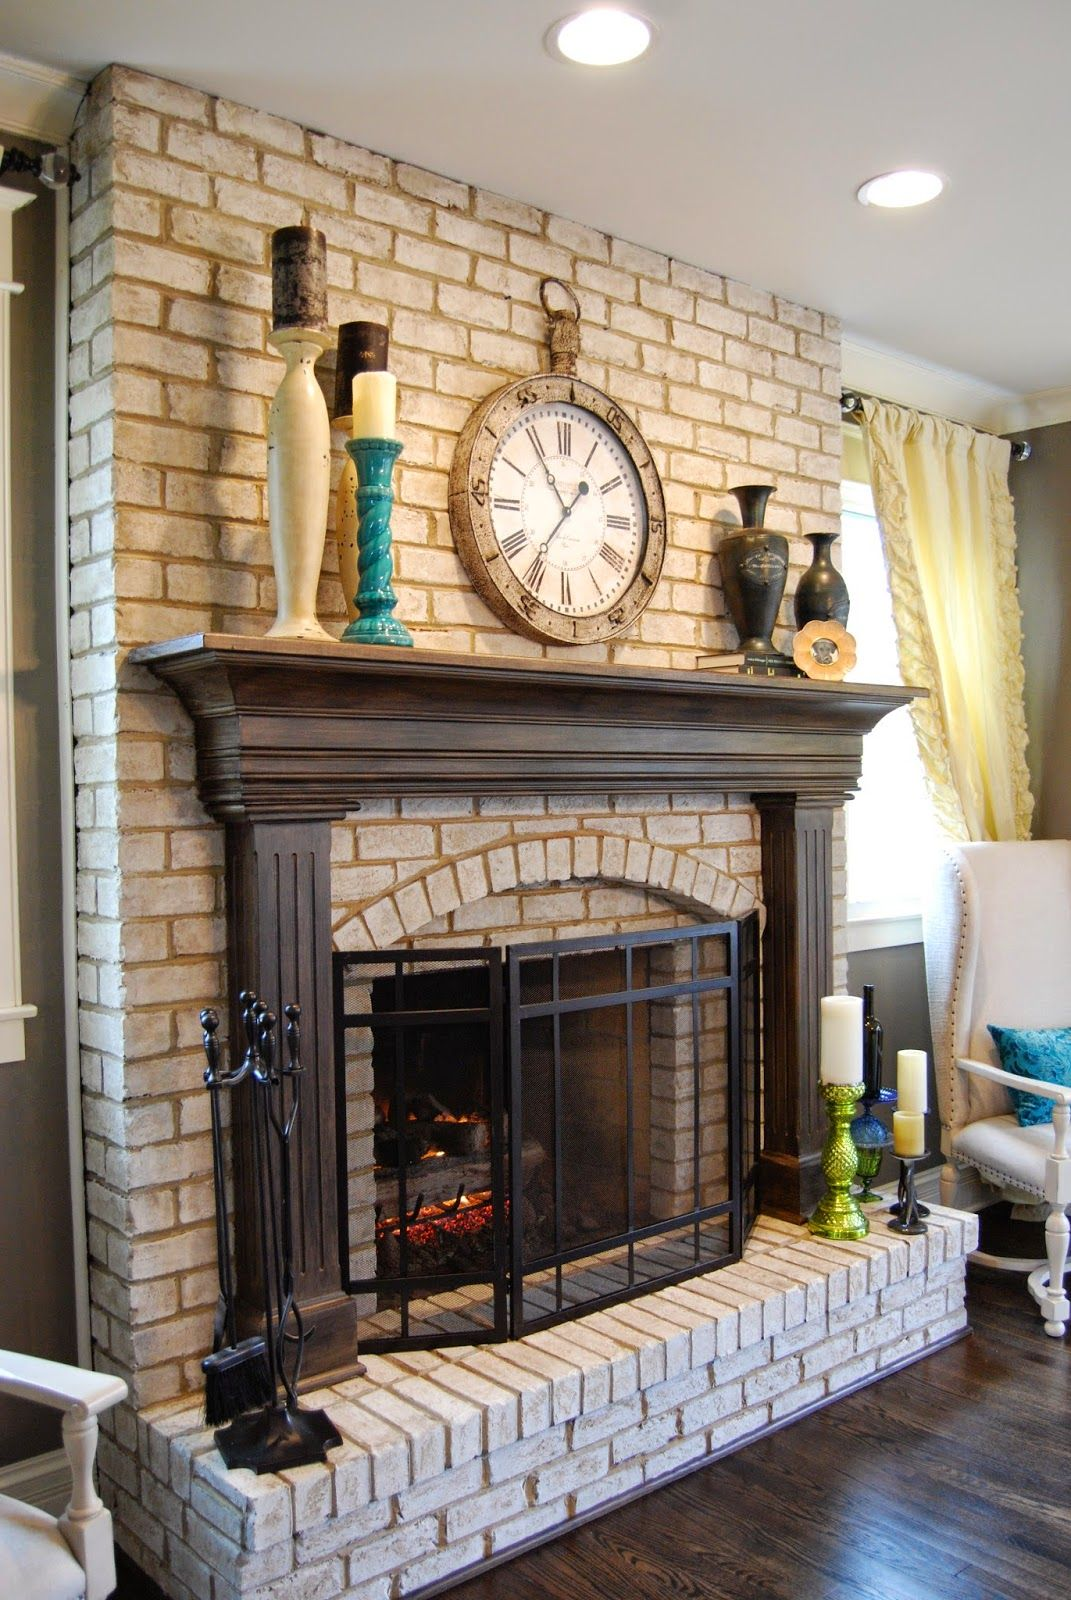 Best Red Brick Fireplace With White Mantel Repainted For A Cozy This Month